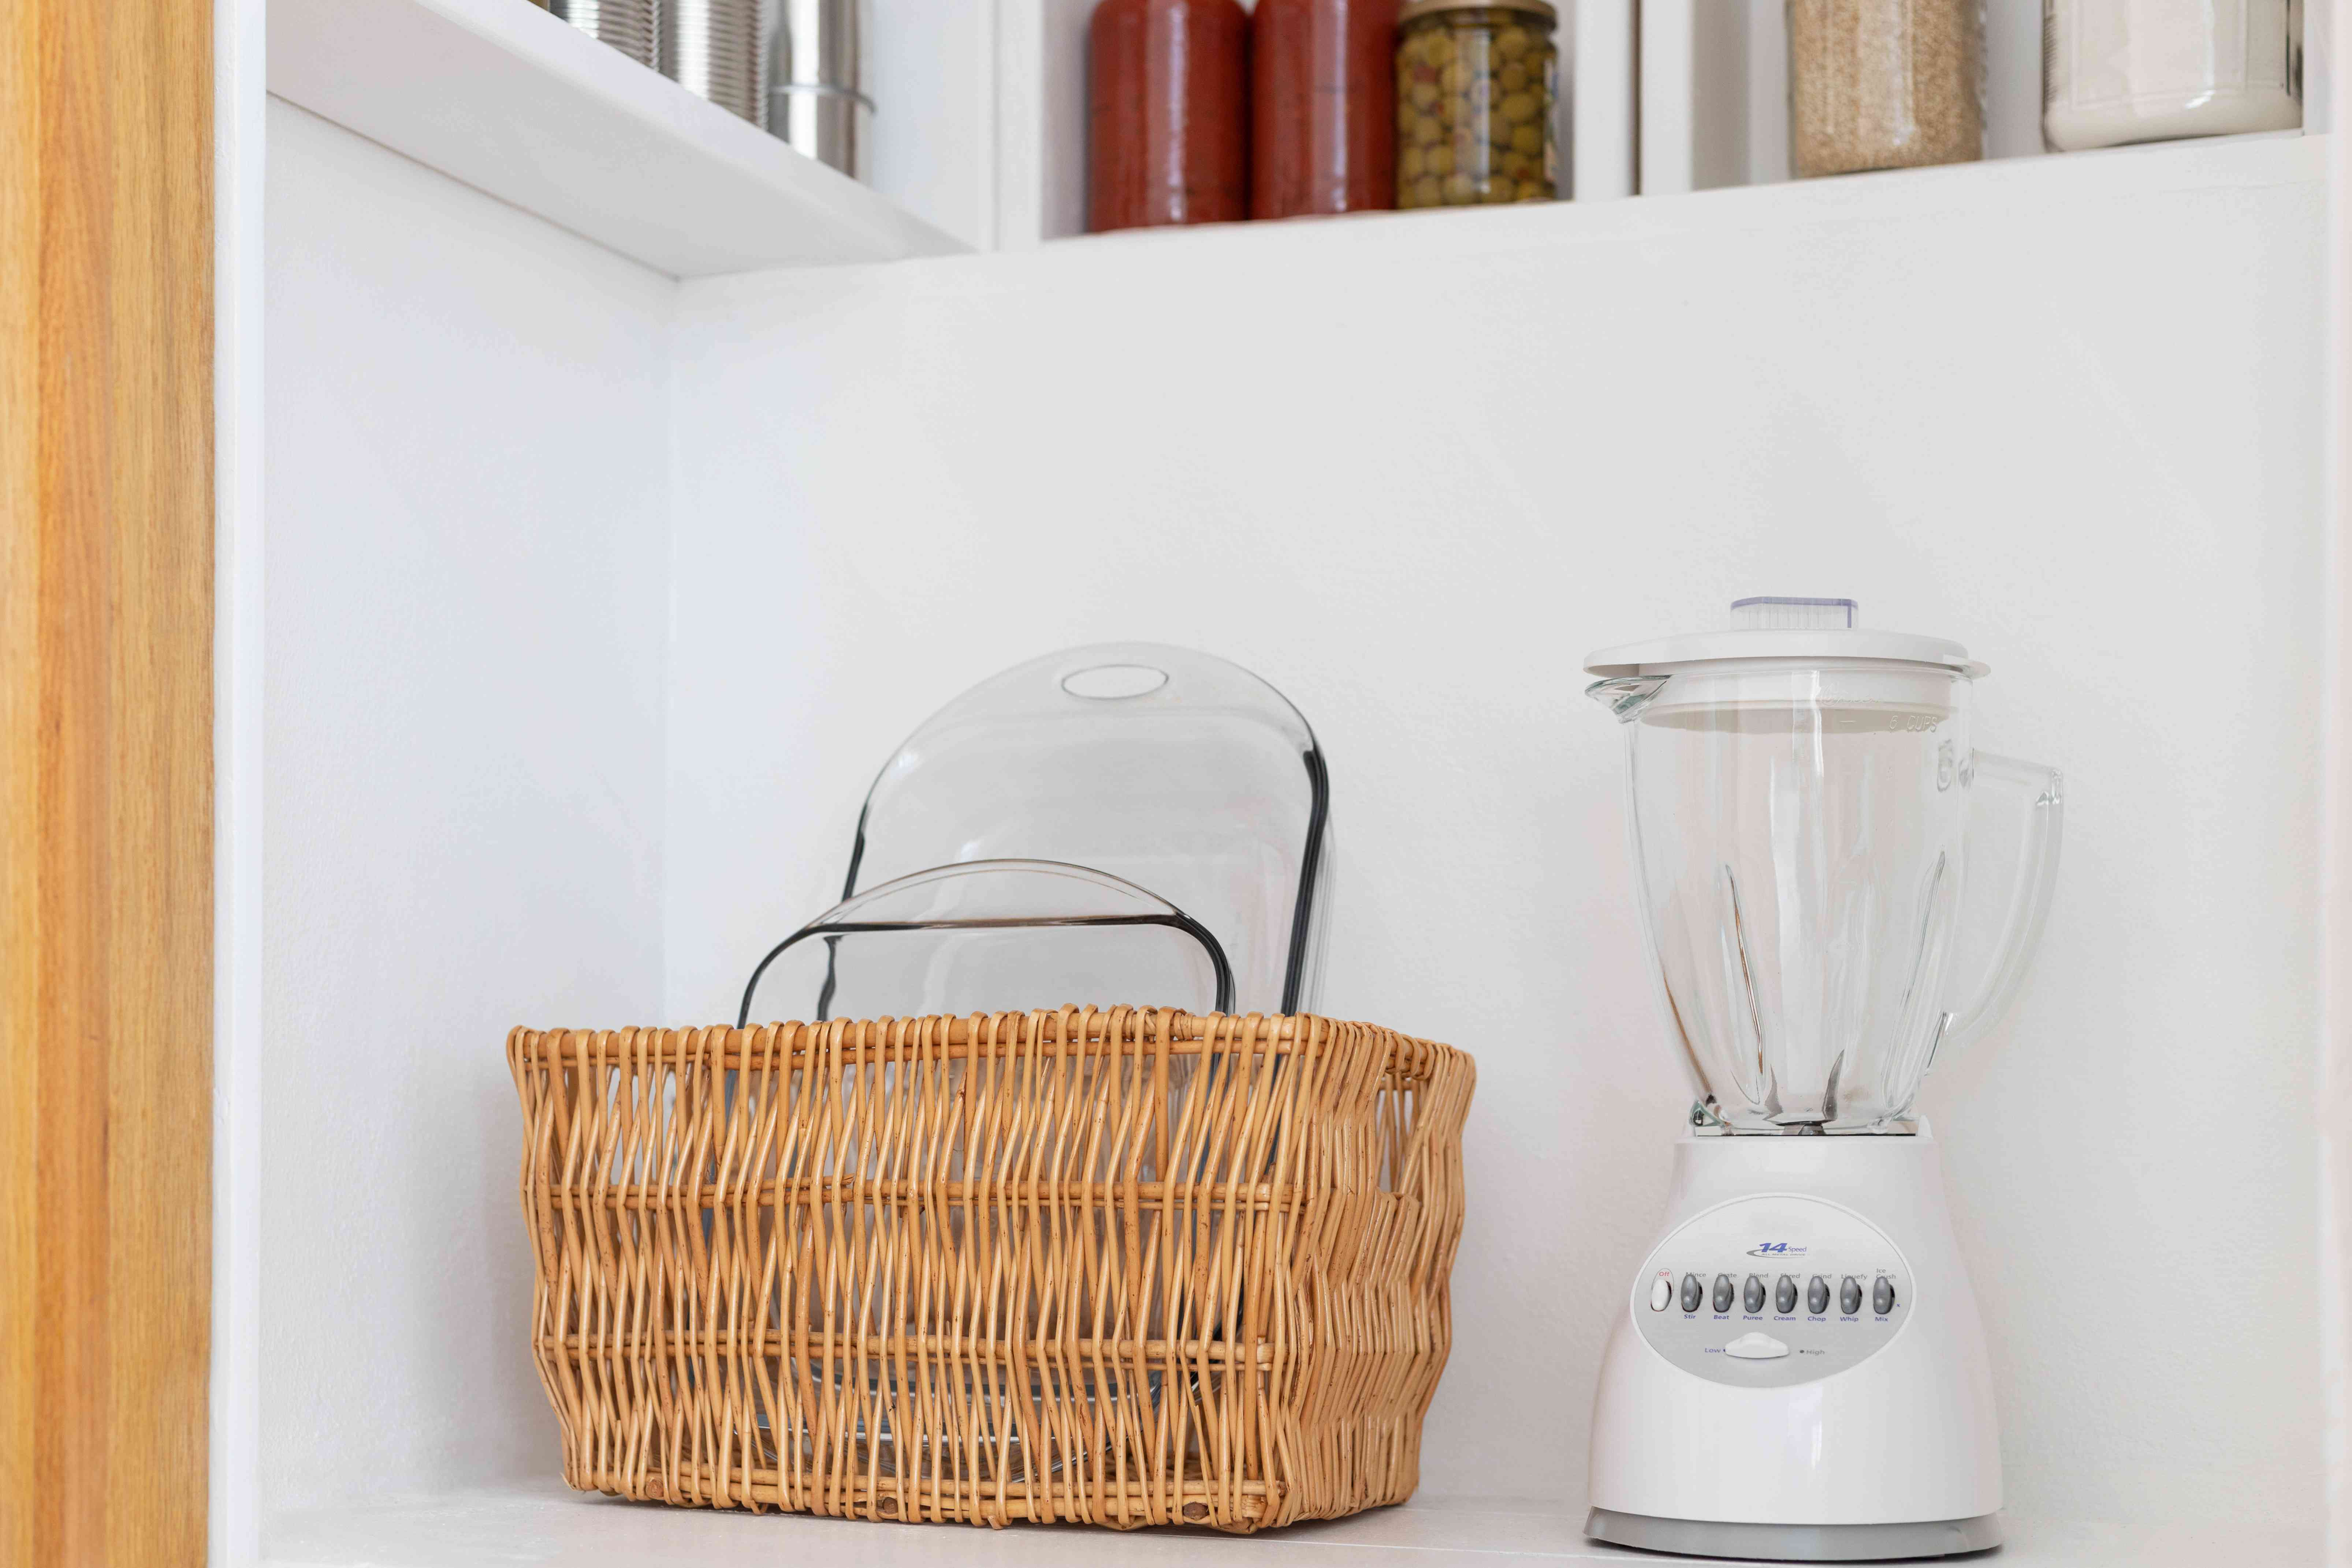 storing appliances and casserole dishes in the pantry